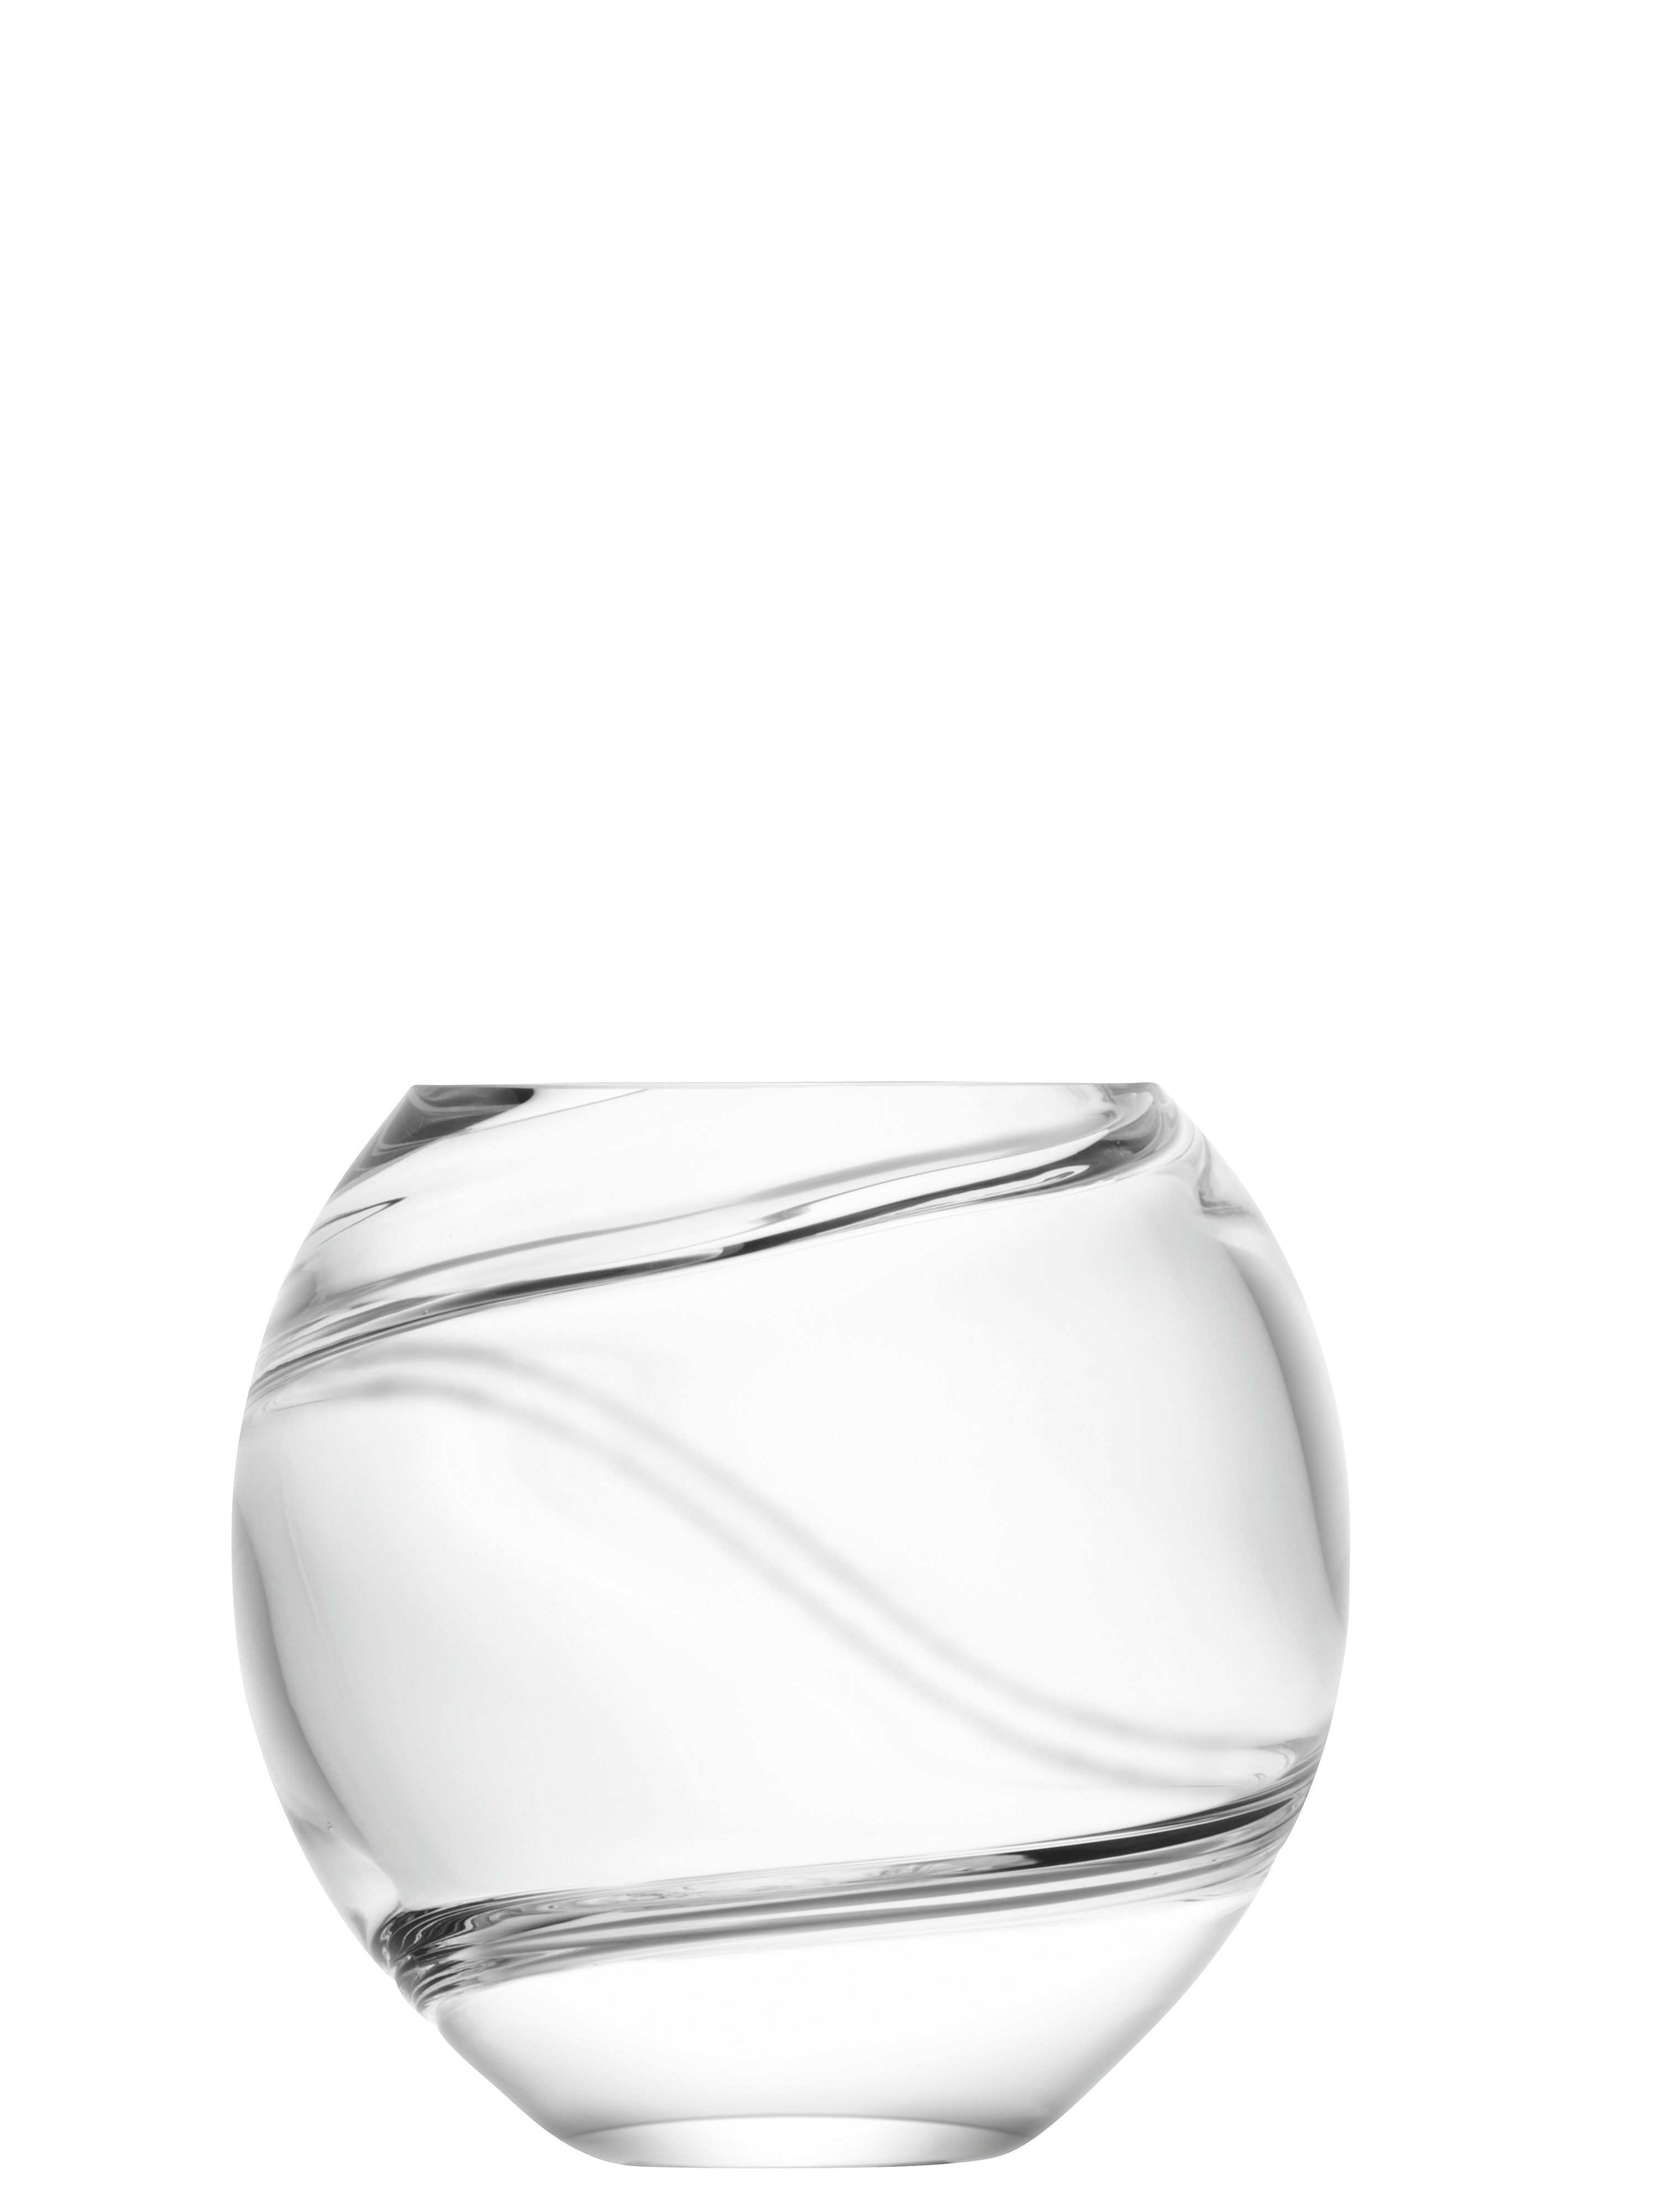 Malika Grand spiral vase height 15.5cm in clear